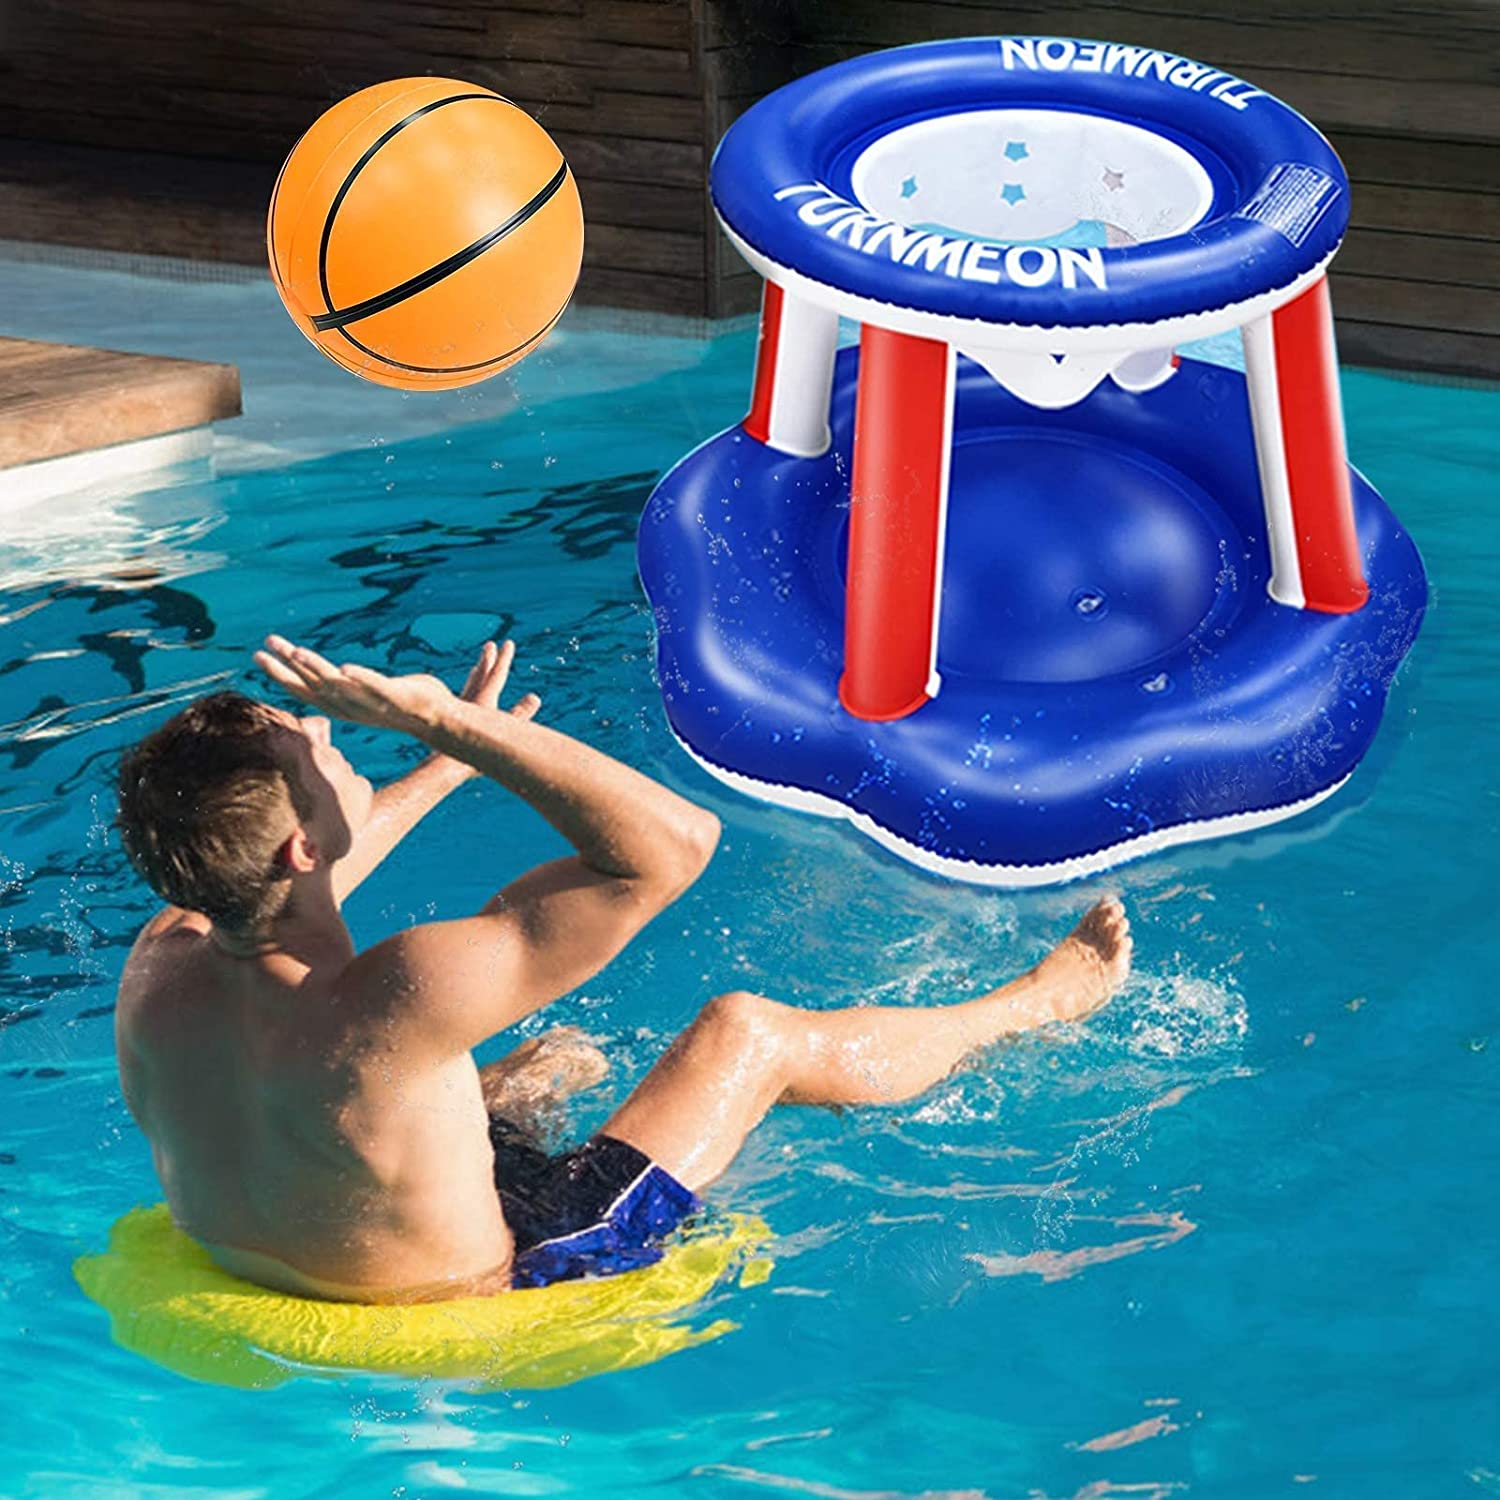 iGeeKid Inflatable Swimming Pool Basketball Hoop Pool Float Set Inflatable Pool Toys Water Games with Ball for Kids Adults Summer Pool Party Fun Games Beach Ball Outdoor Water Toys Sports Game Set